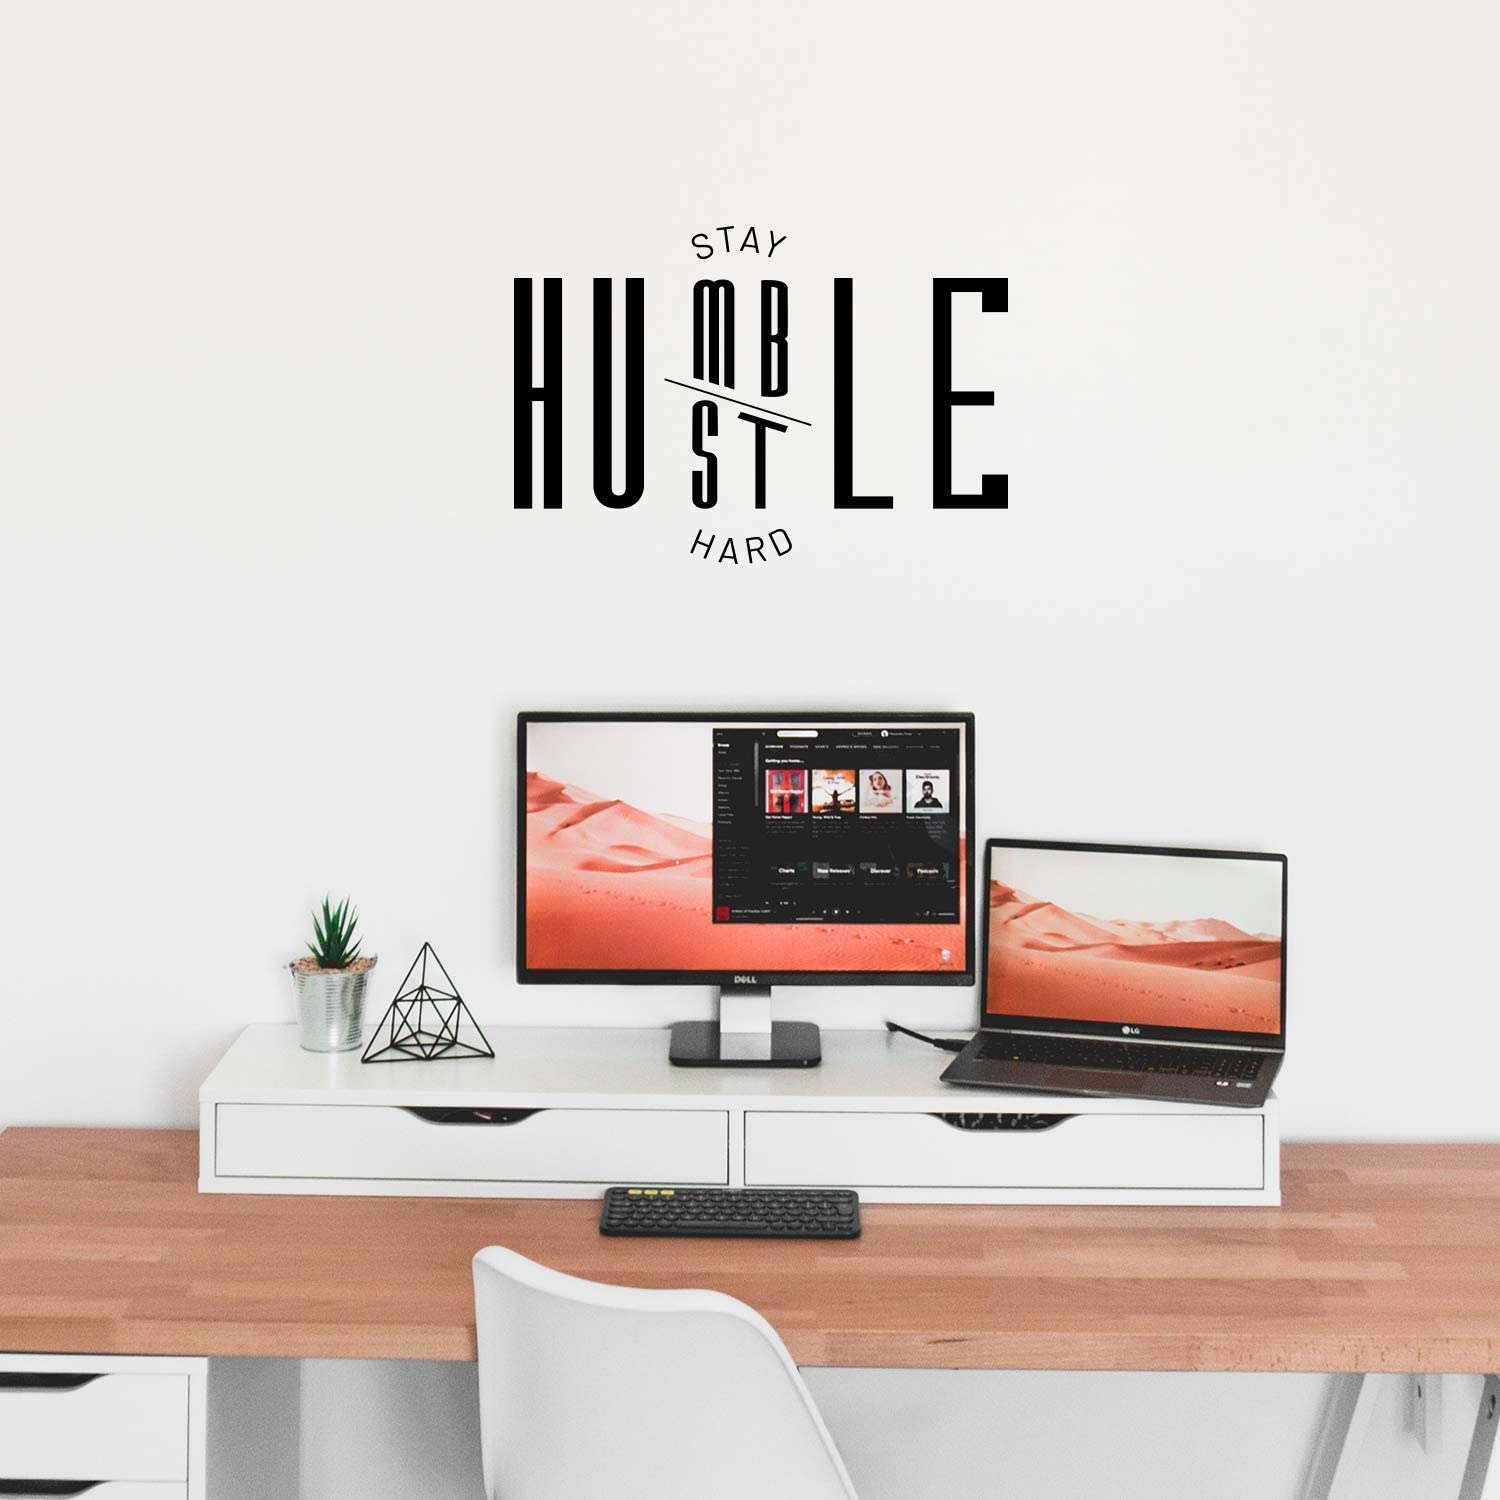 """Vinyl Wall Art Decal - Stay Humble Hustle Hard - 16"""" x 23"""" - Trendy Motivational Positive Vibes Quote Sticker for Home Bedroom Closet Living Room Work Office Coffee Shop Decor"""